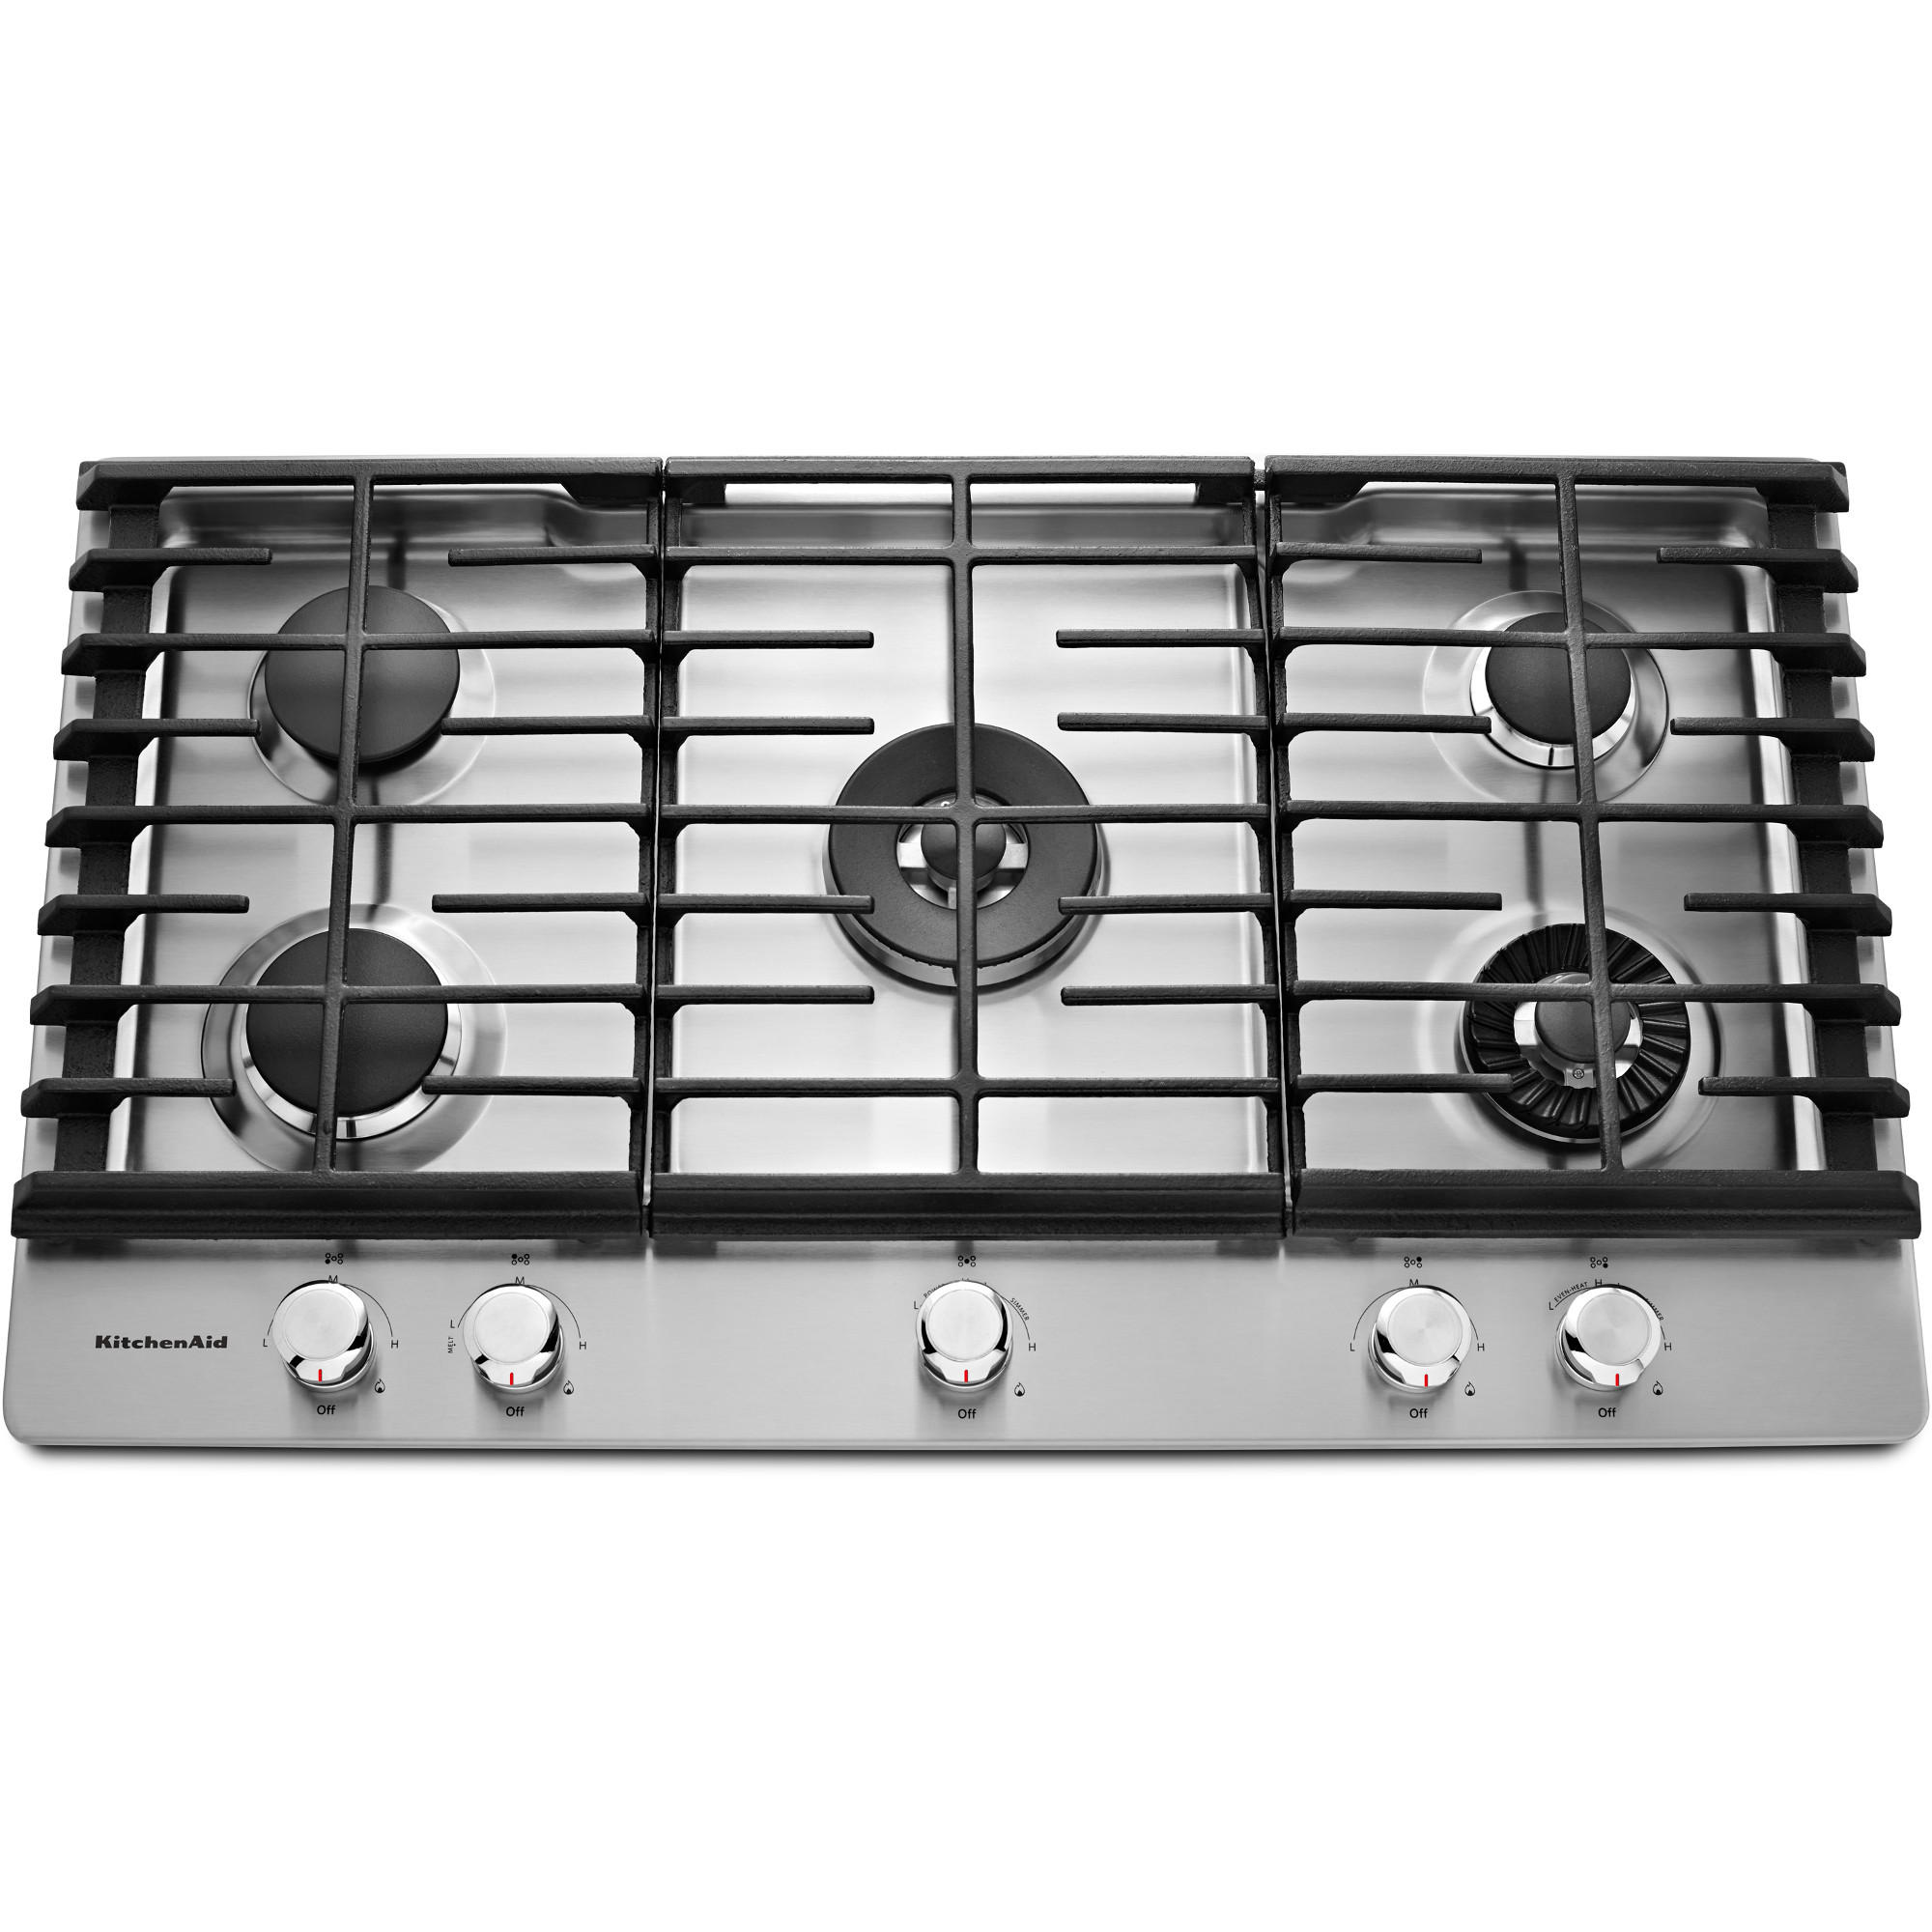 KitchenAid 36 Gas 5 Burner Cooktop w/ Griddle - Stainless Steel